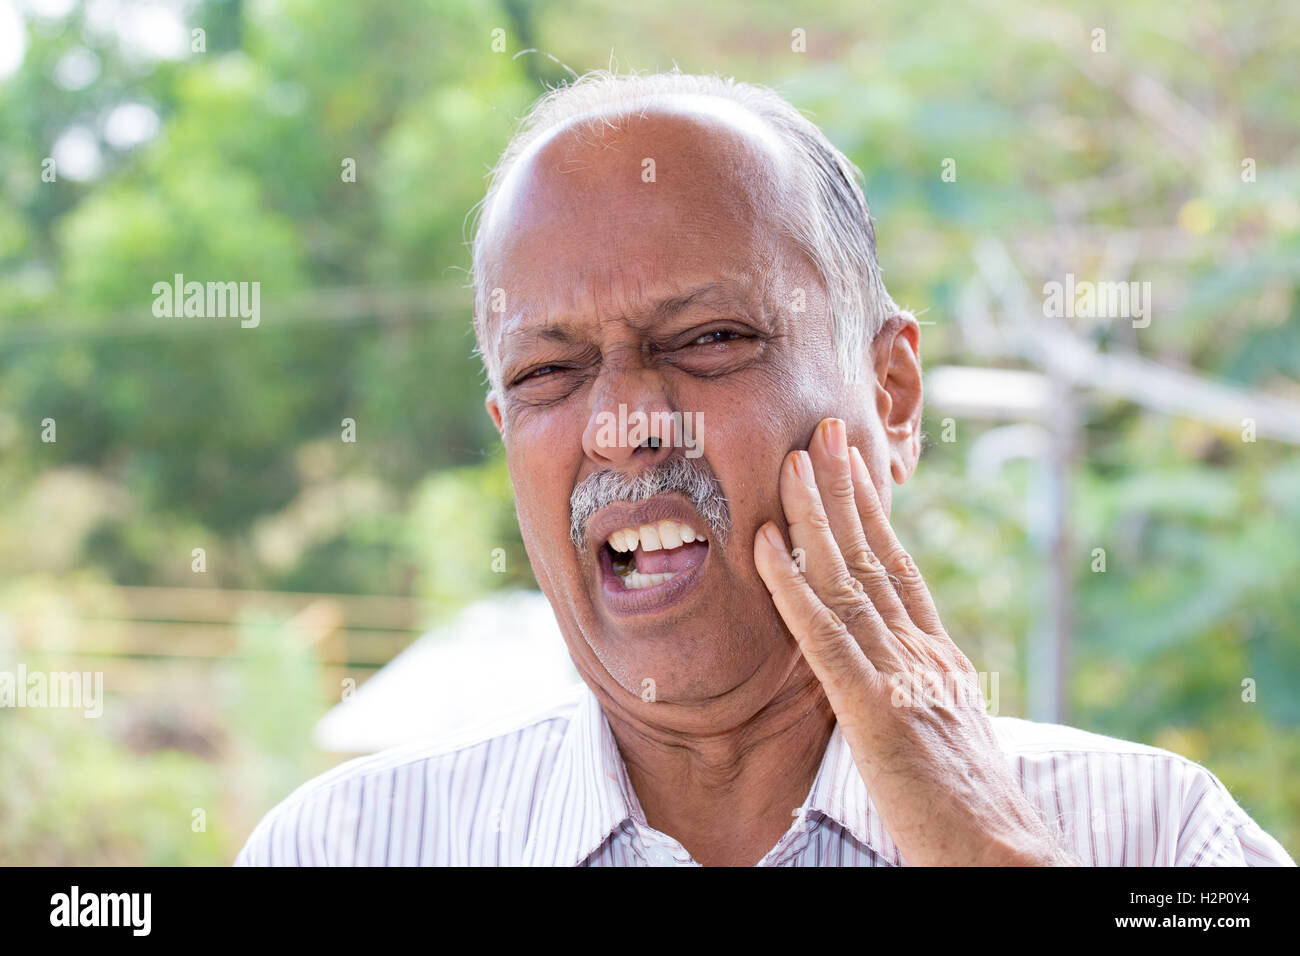 Closeup portrait elderly business man with tooth ache crown problem cavity grimacing from pain touching outside - Stock Image